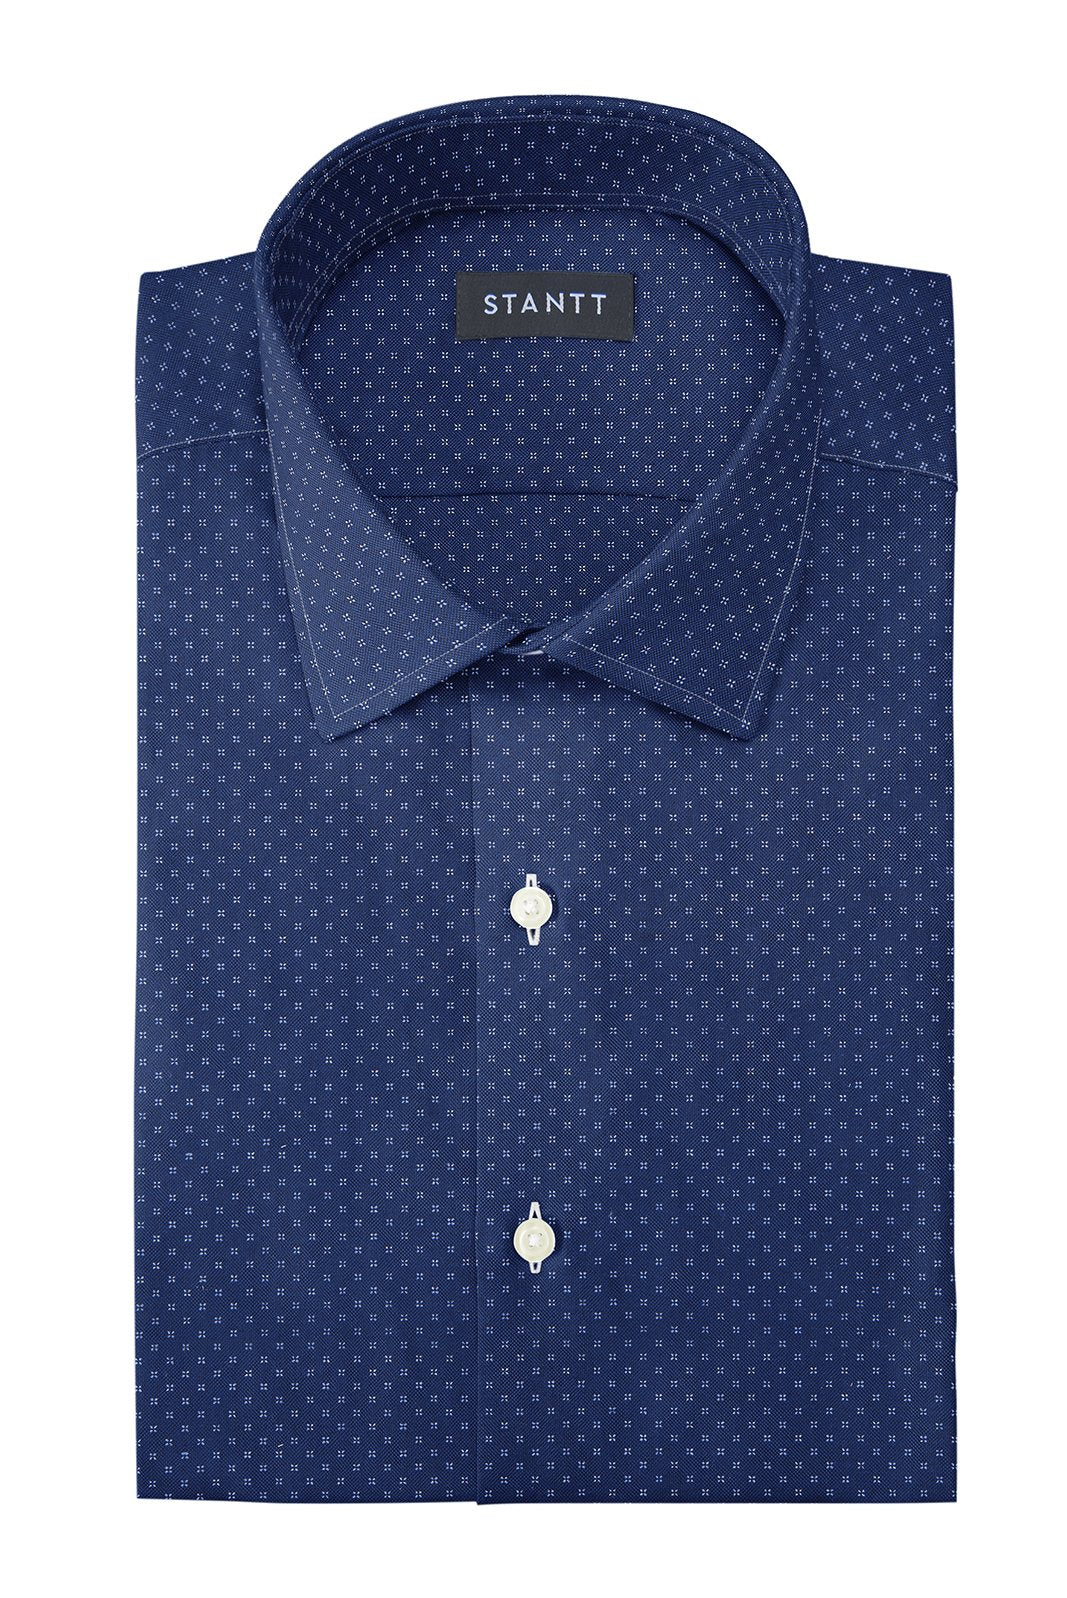 Navy Pinpoint Dot: Modified-Spread Collar, French Cuff